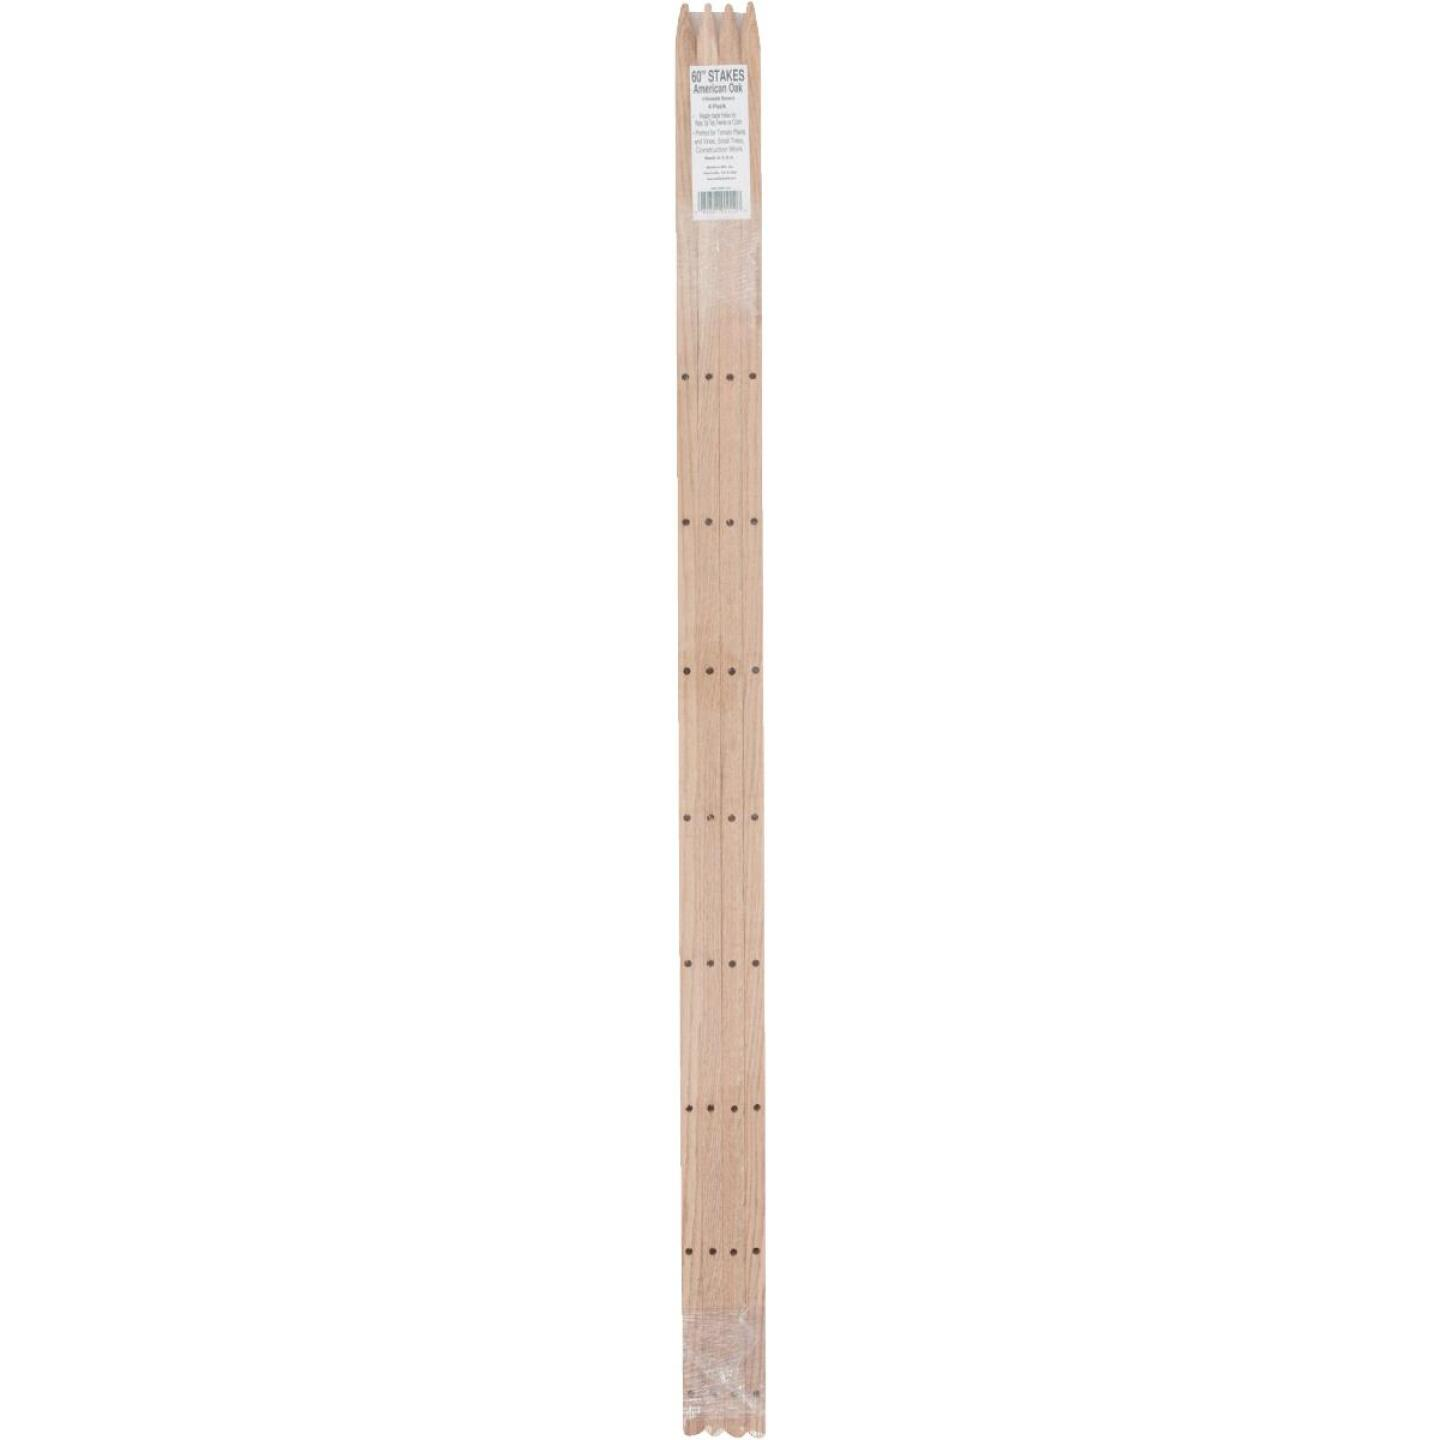 Madison Mill 60 In. Oak Wood Plant Stake (4-Pack) Image 2